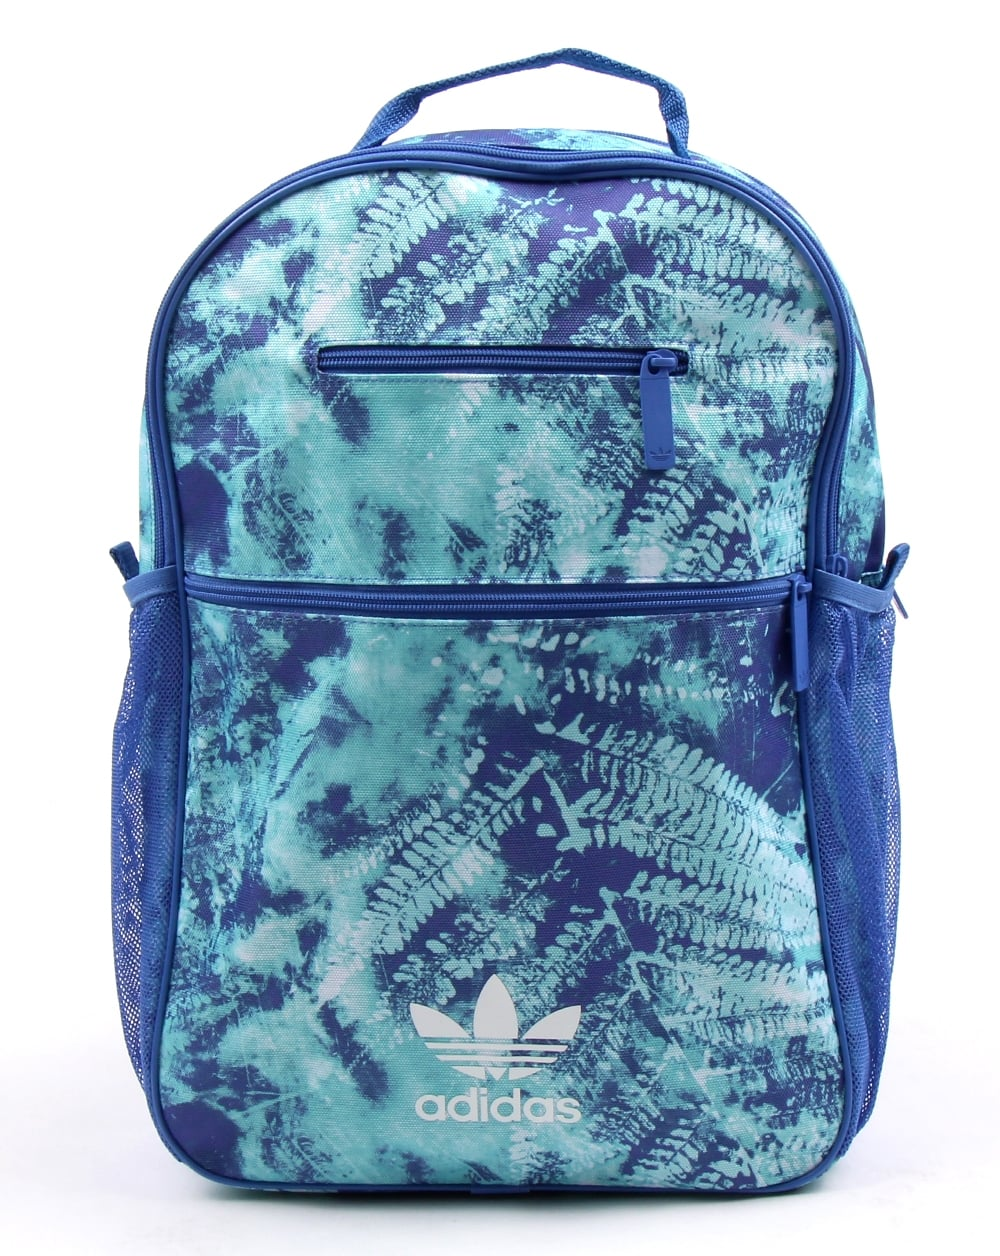 Adidas Originals Ob Backpack Blue Men S Boy S Bag Rucksack